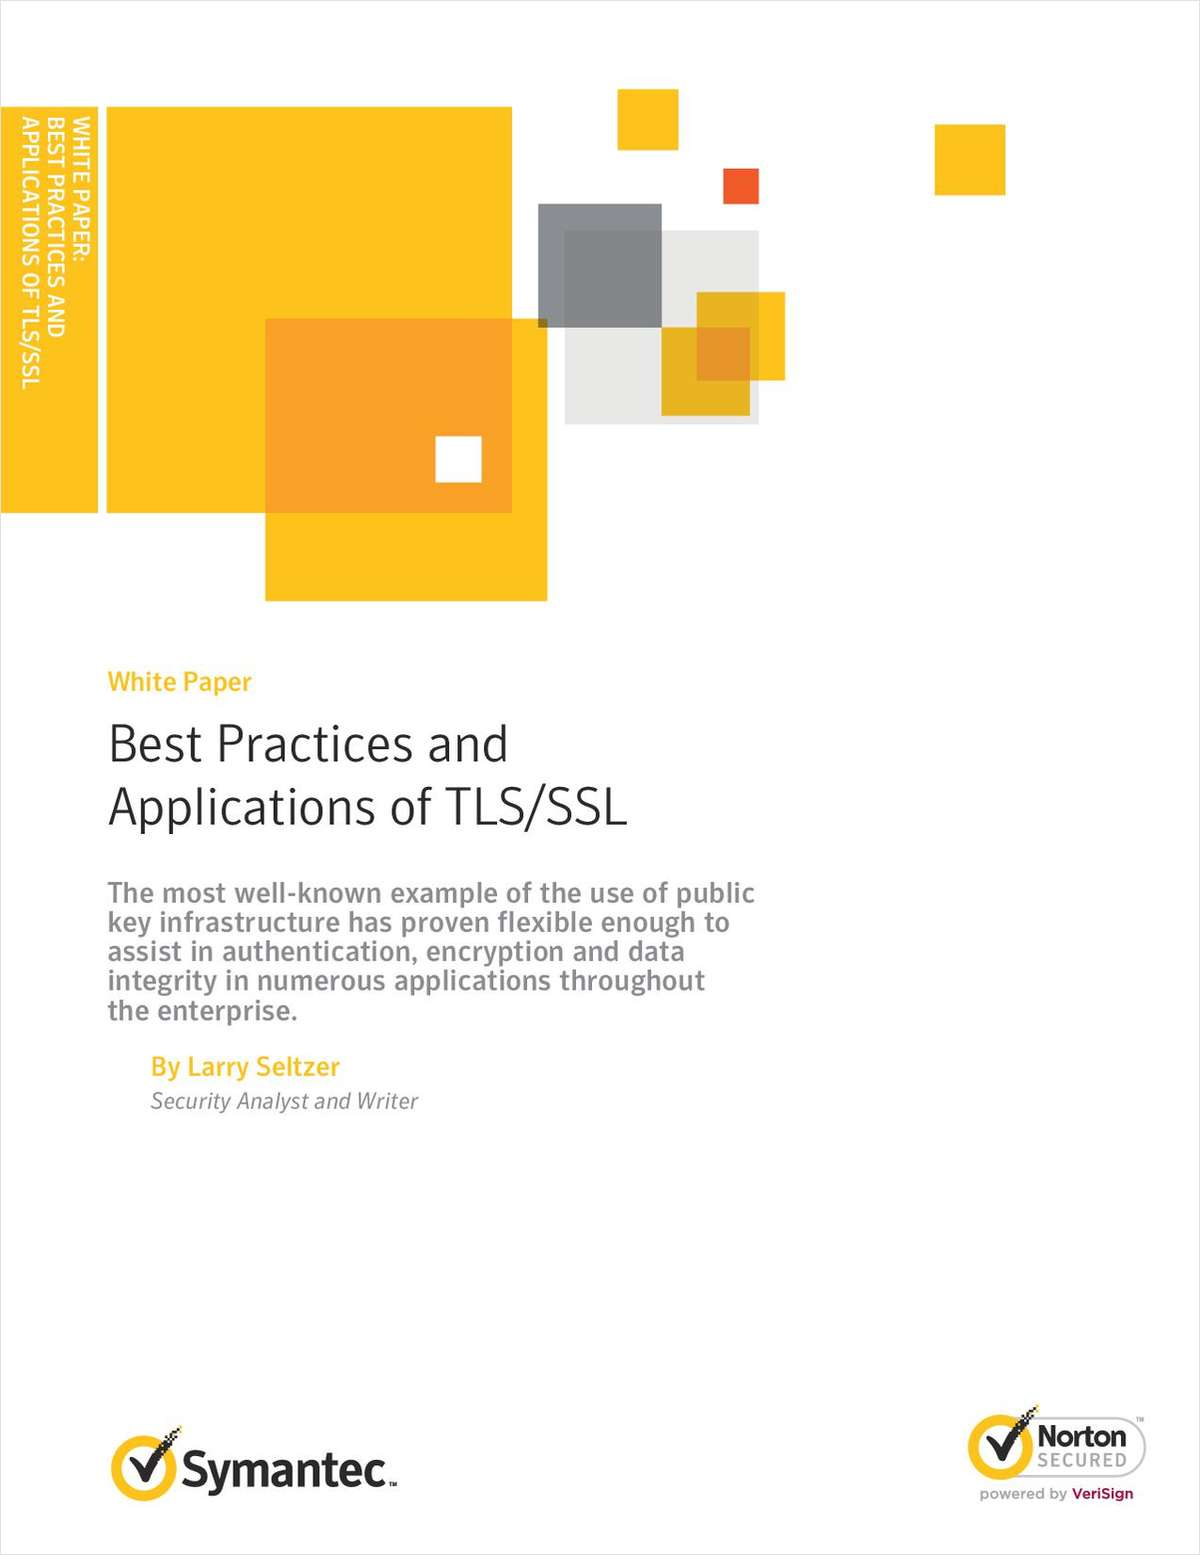 Best Practices and Applications of TLS/SSL